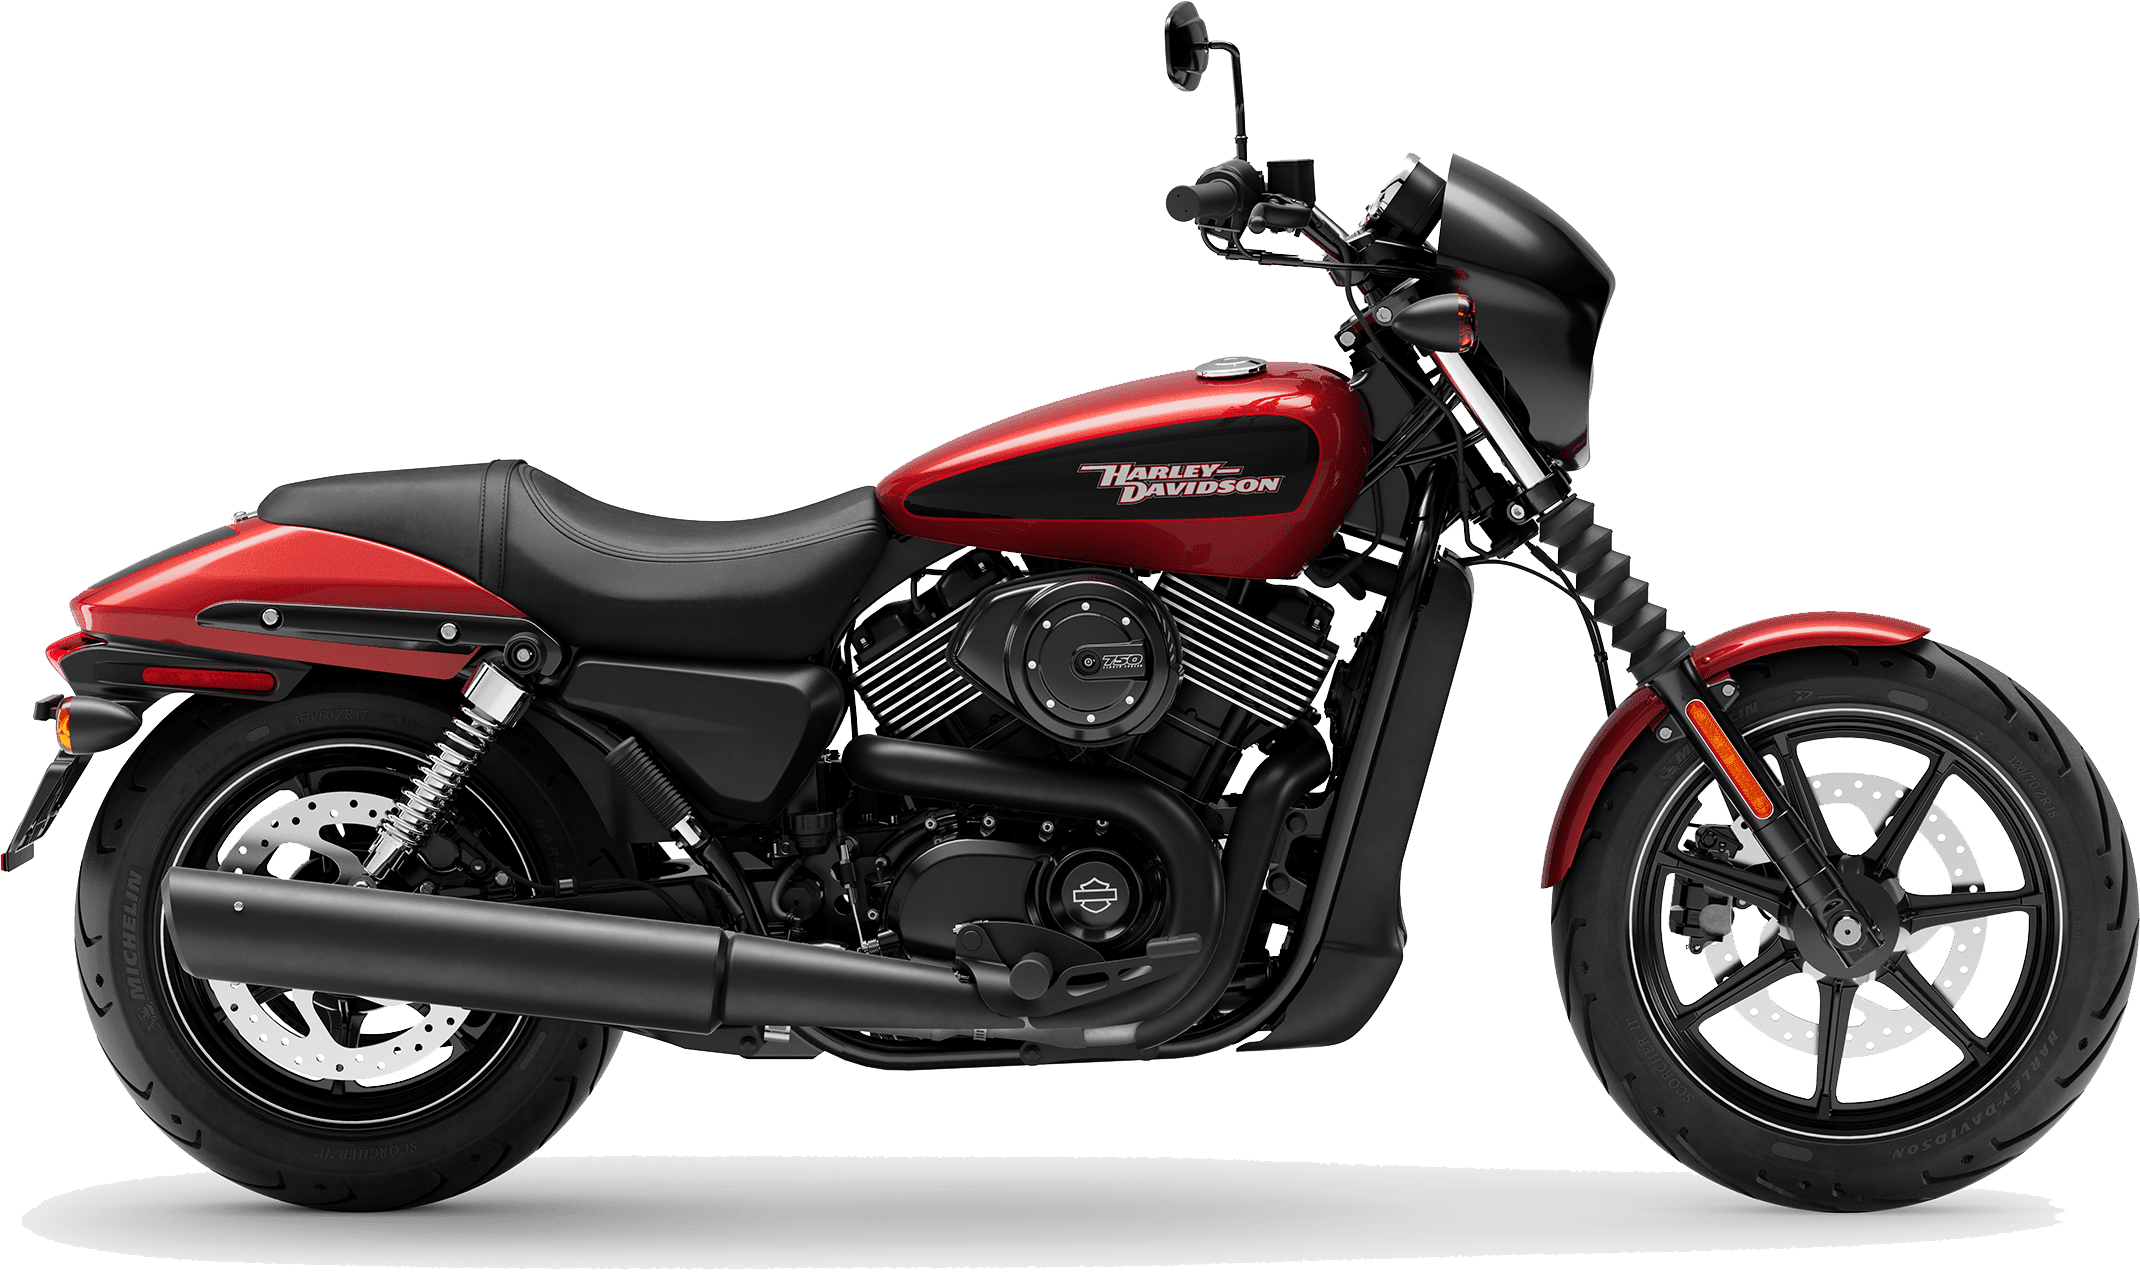 2019 Harley-Davidson H-D Street 750 Wicked Red Deluxe